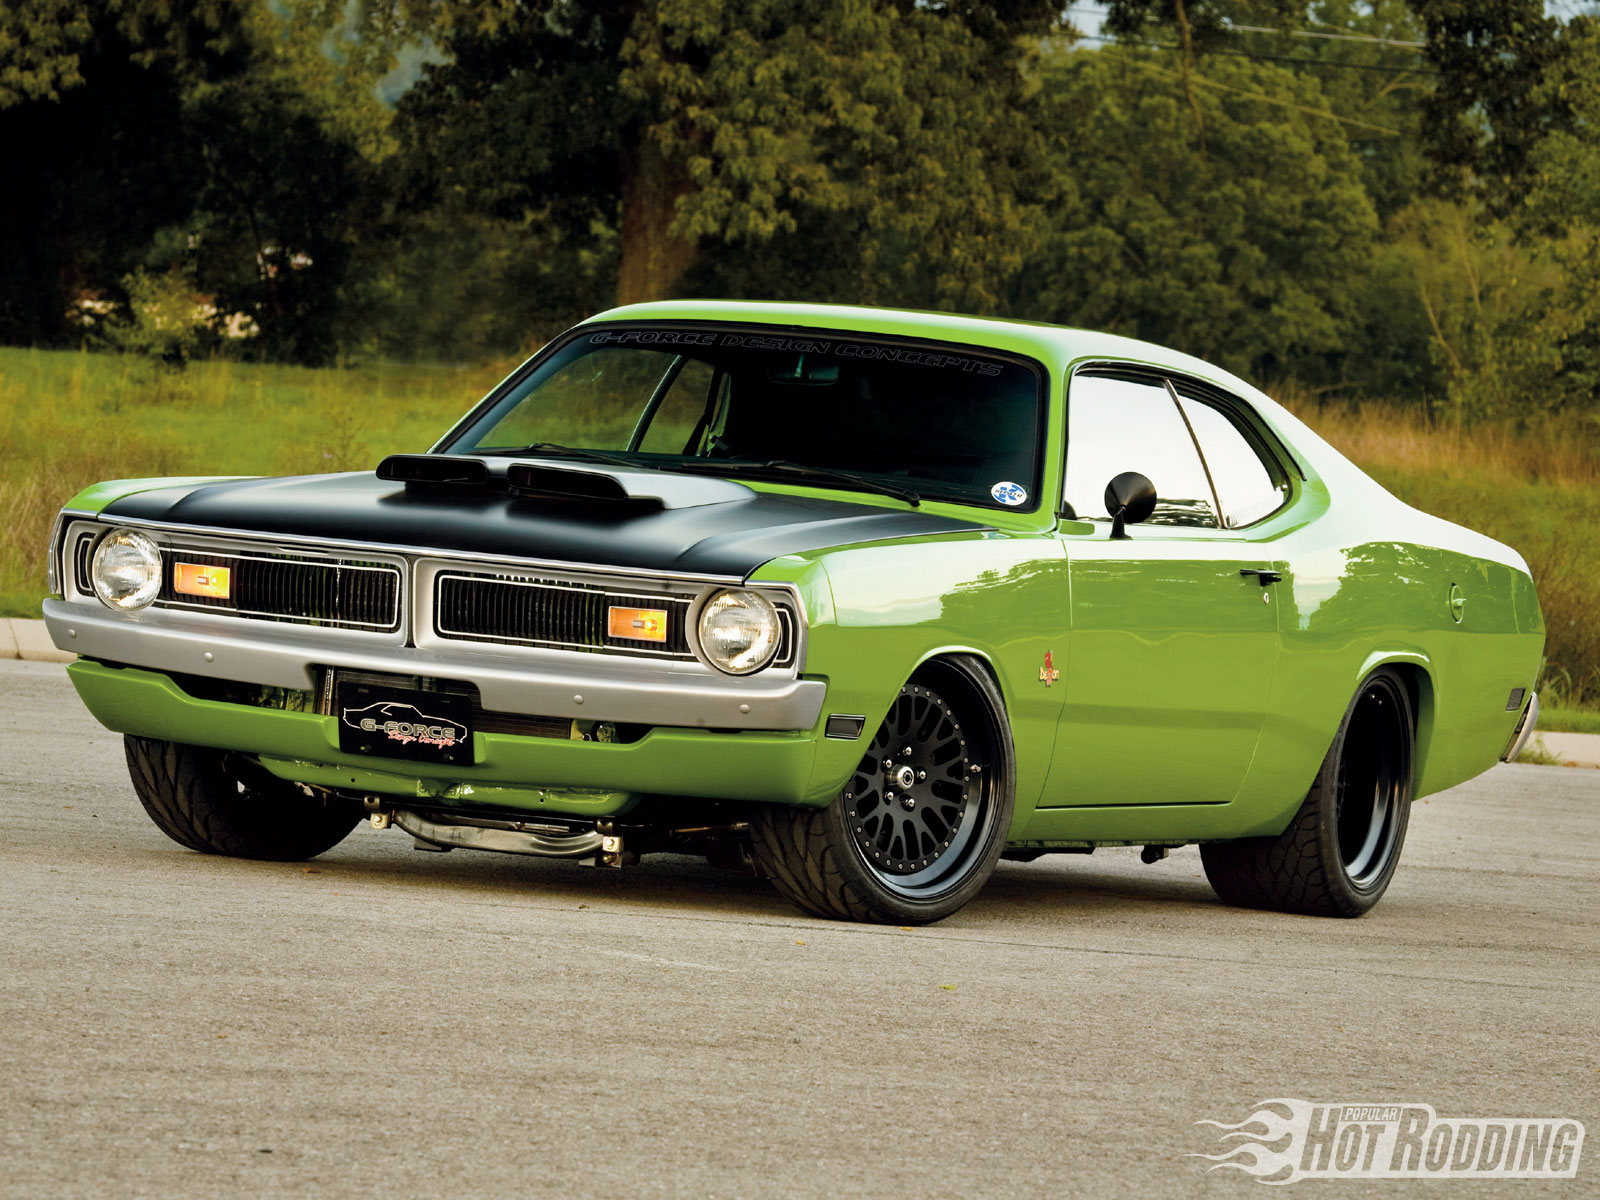 Dodge Demon hot rod muscle cars classic wallpaper 1600x1200 31830 1600x1200